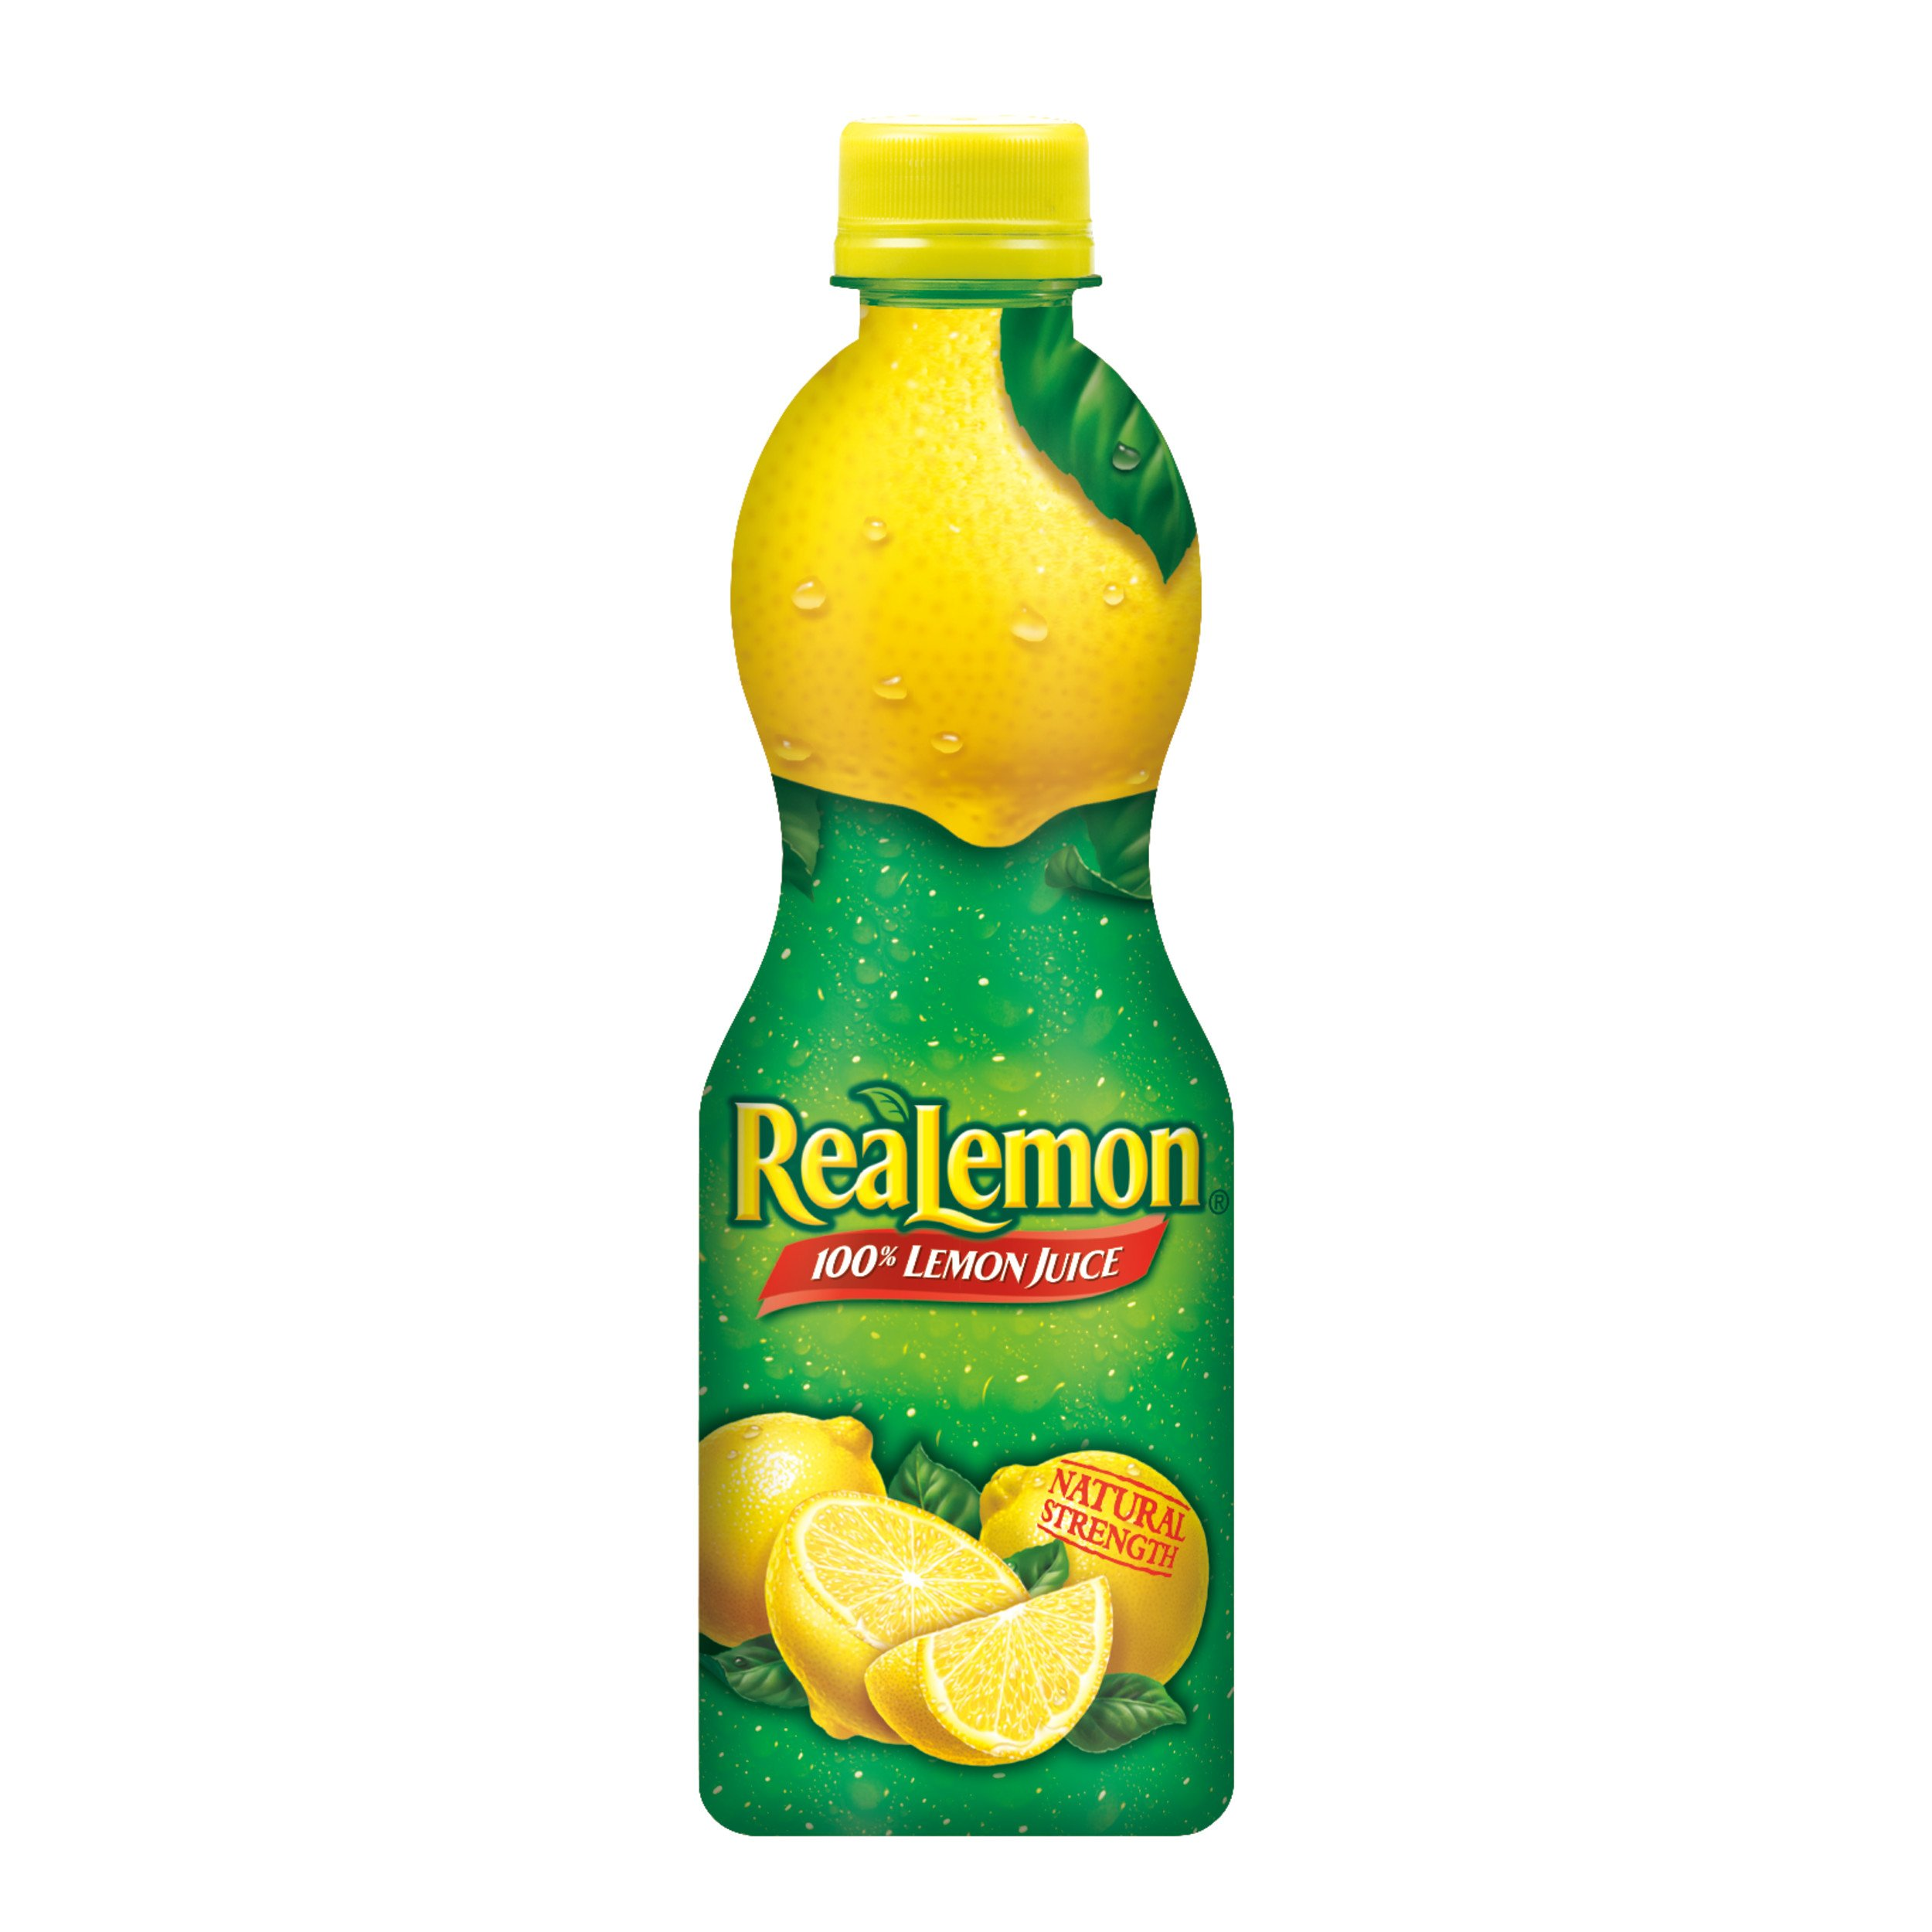 ReaLemon 100% Lemon Juice, 8 fl oz bottles (Pack of 12)